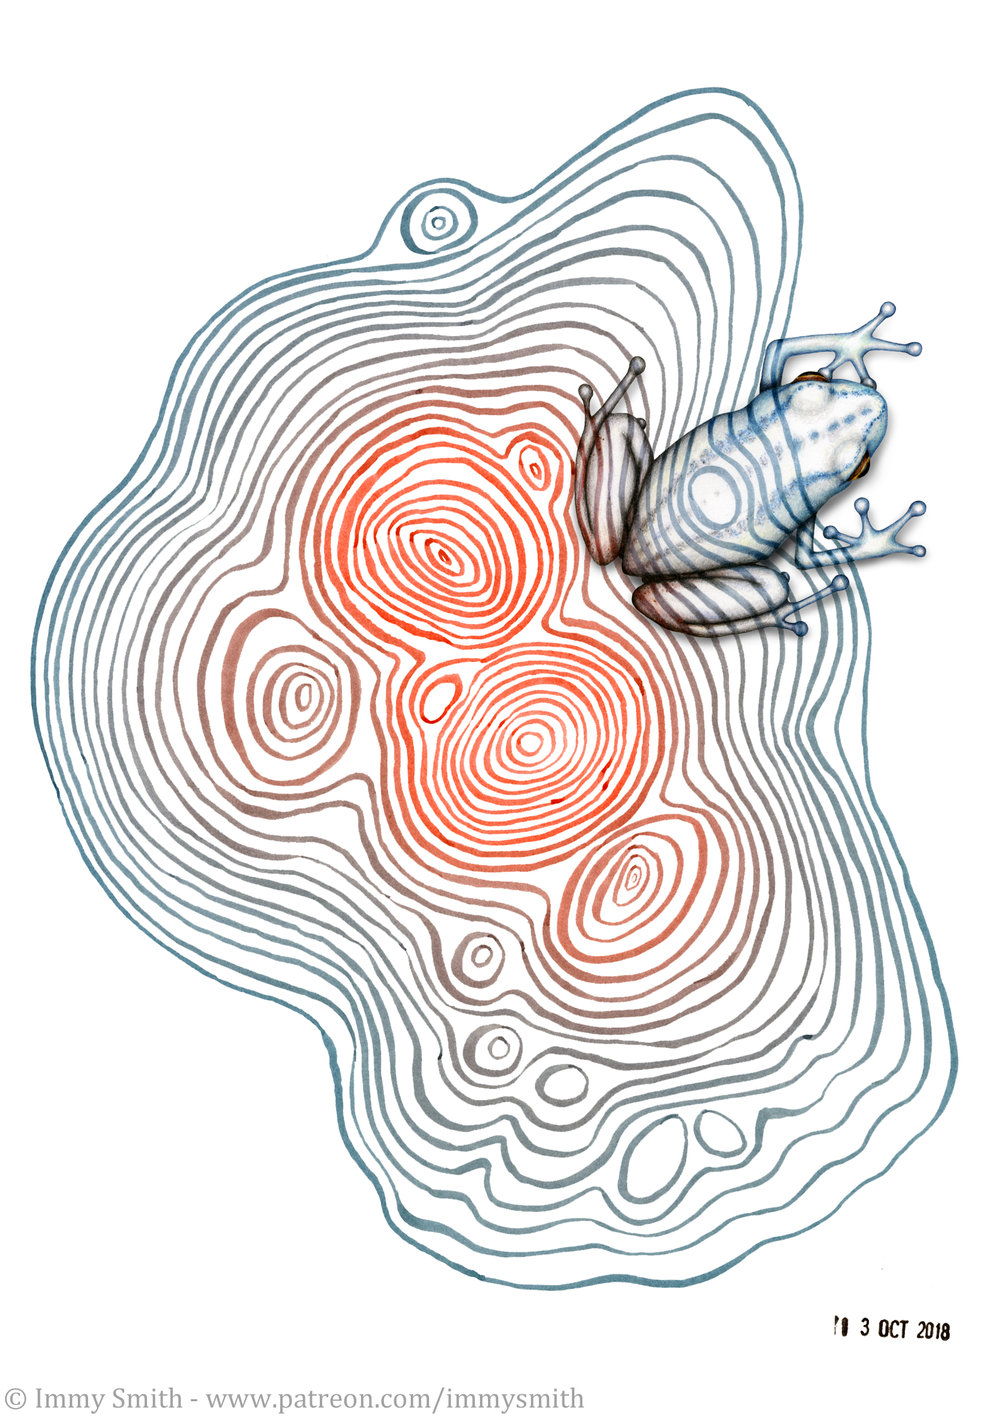 Image description; a small rainfrog drawn in colour pencil over an ink pattern made of concentric ovoid layers if ink lines. It's drawn in such a way that it appears camouflaged on the underlying pattern.